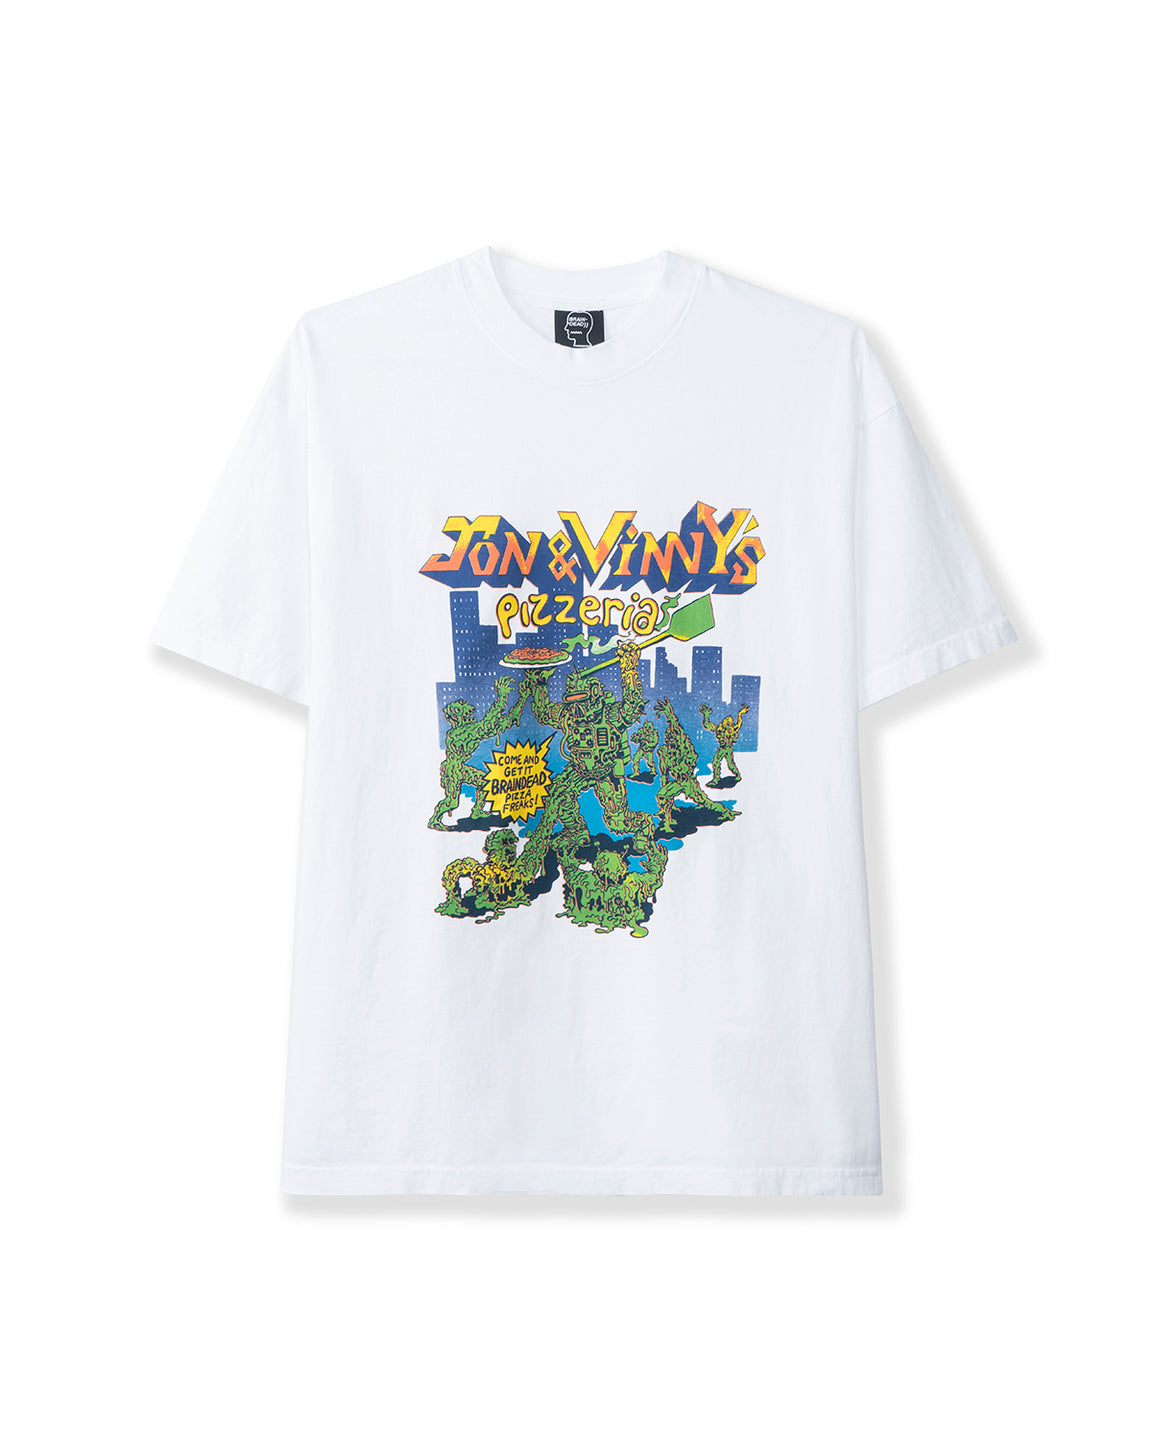 Jon & Vinny's Pizzeria Short Sleeve T-shirt - White